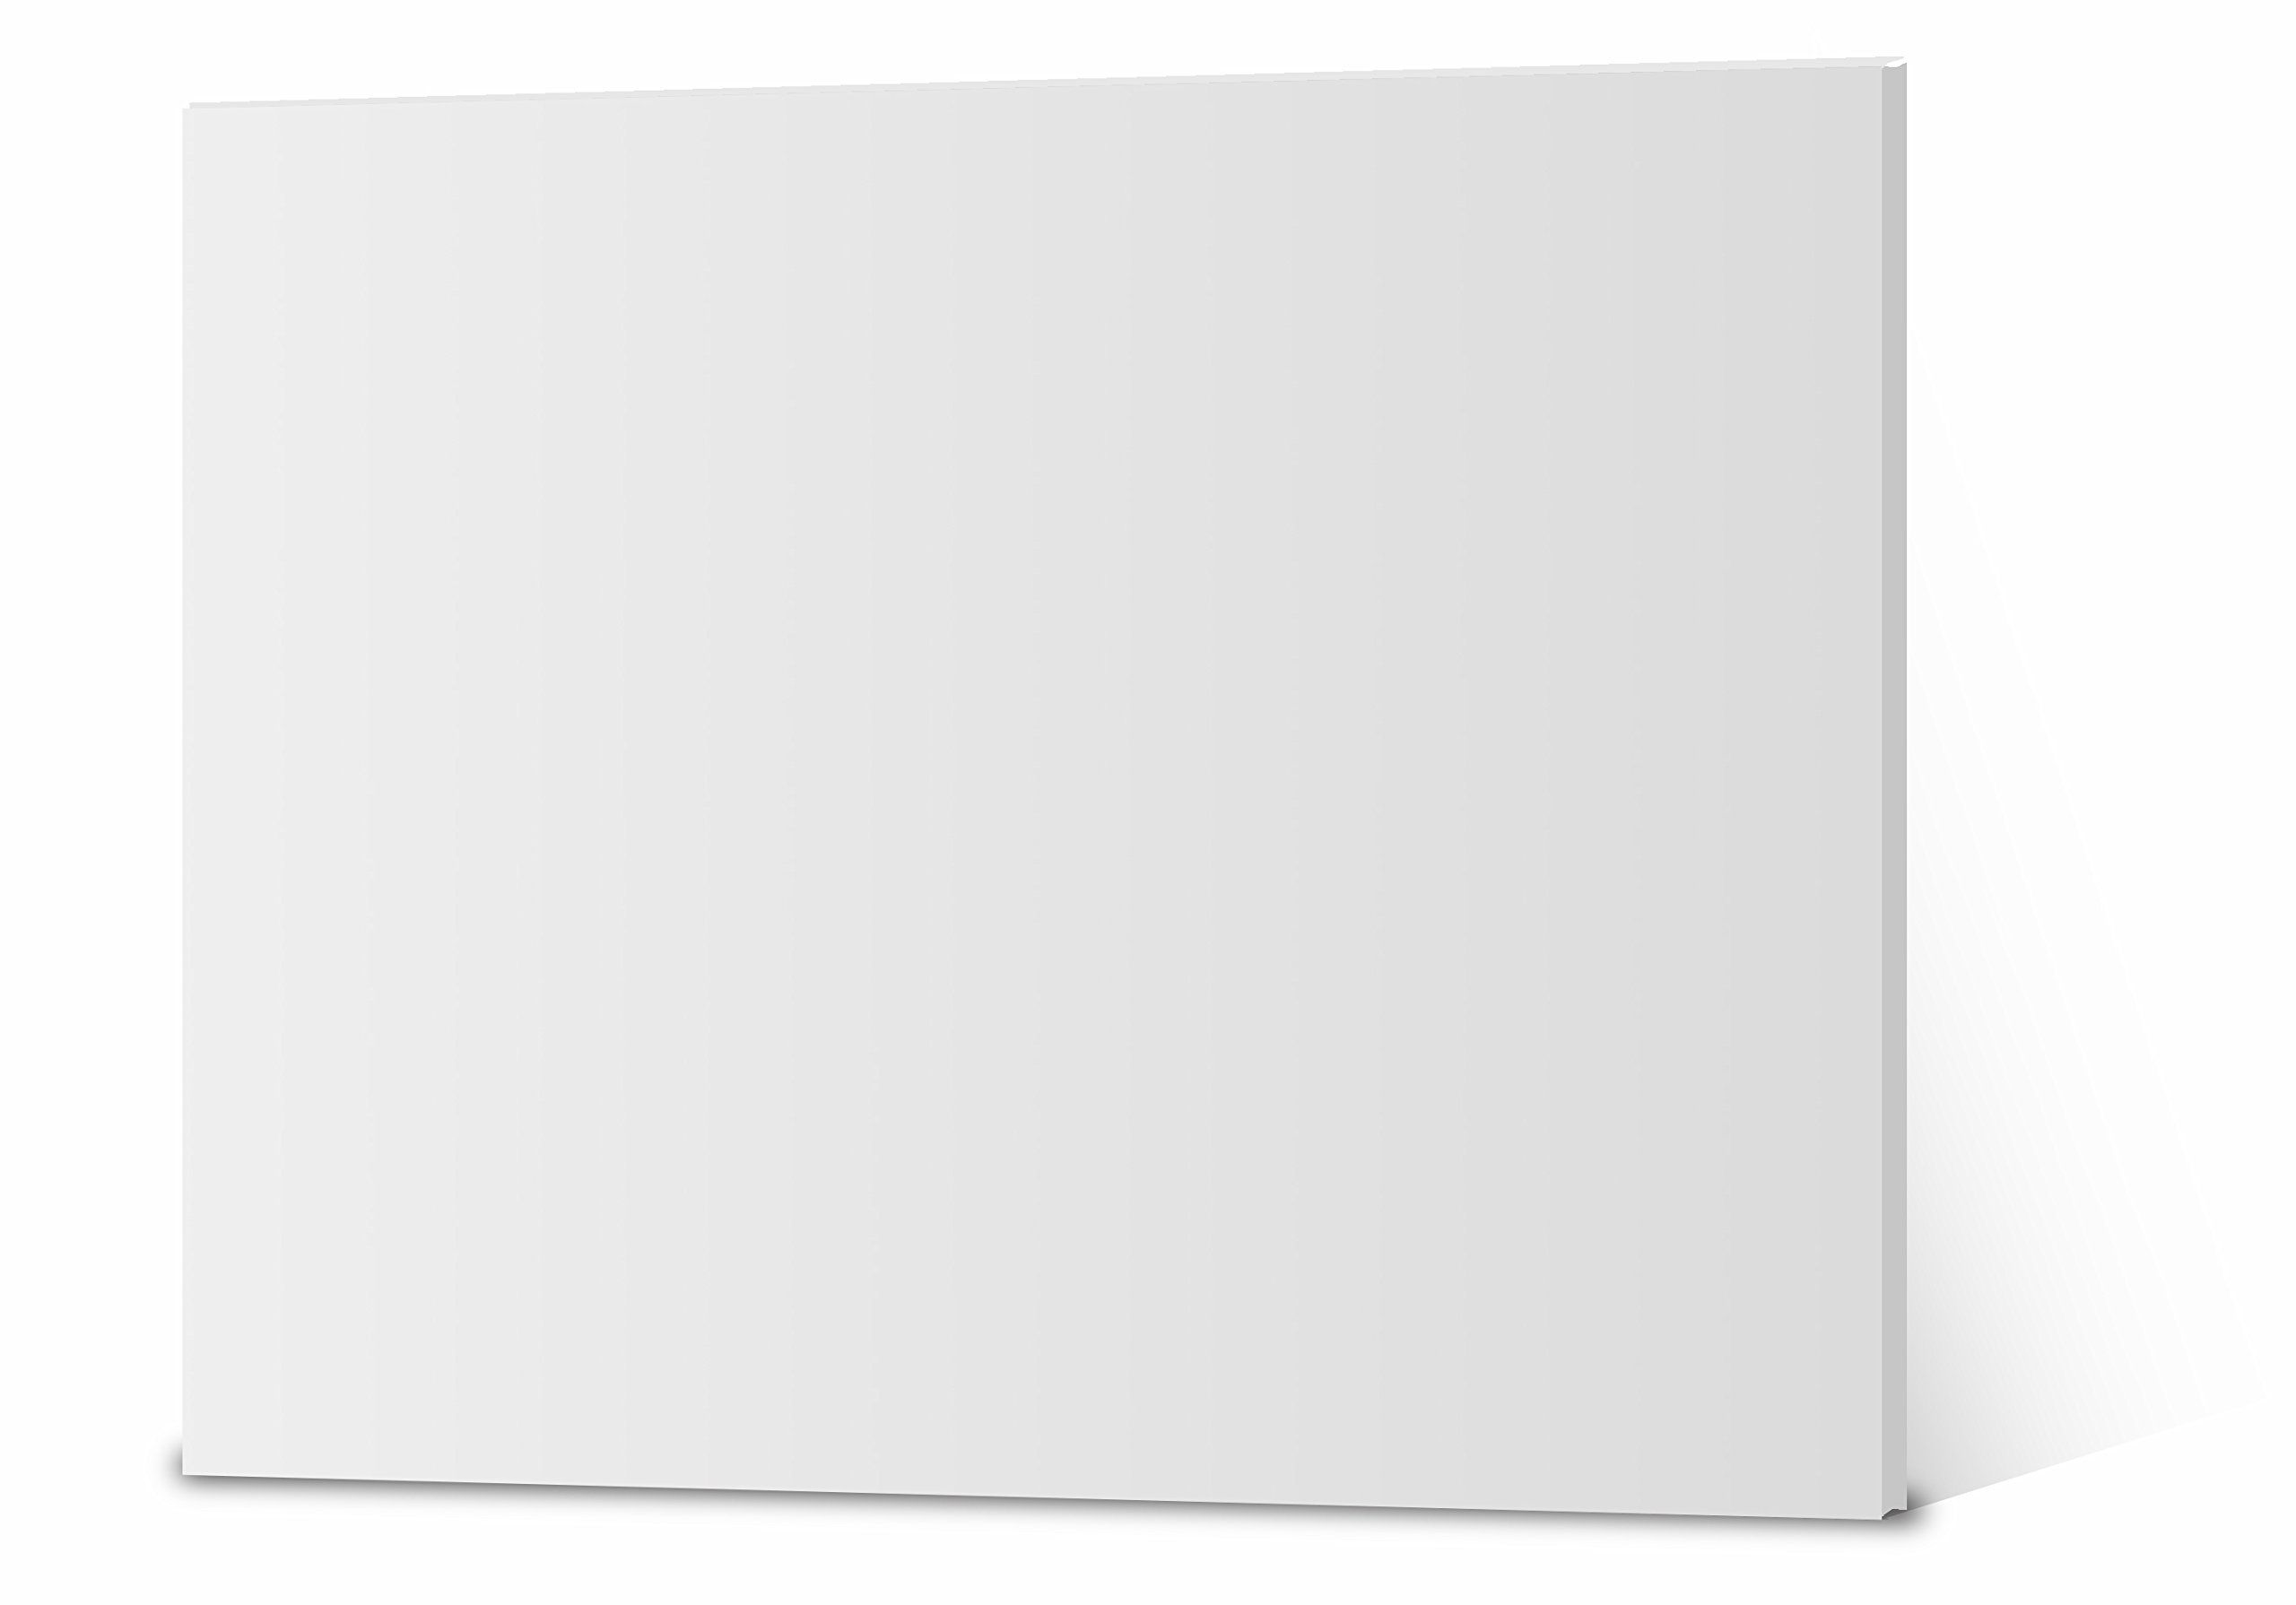 Inexpensive Foam Core White And Black Is Useful For Backgrounds And Bouncing Or Blocking Light Foam Board Foam Elmer